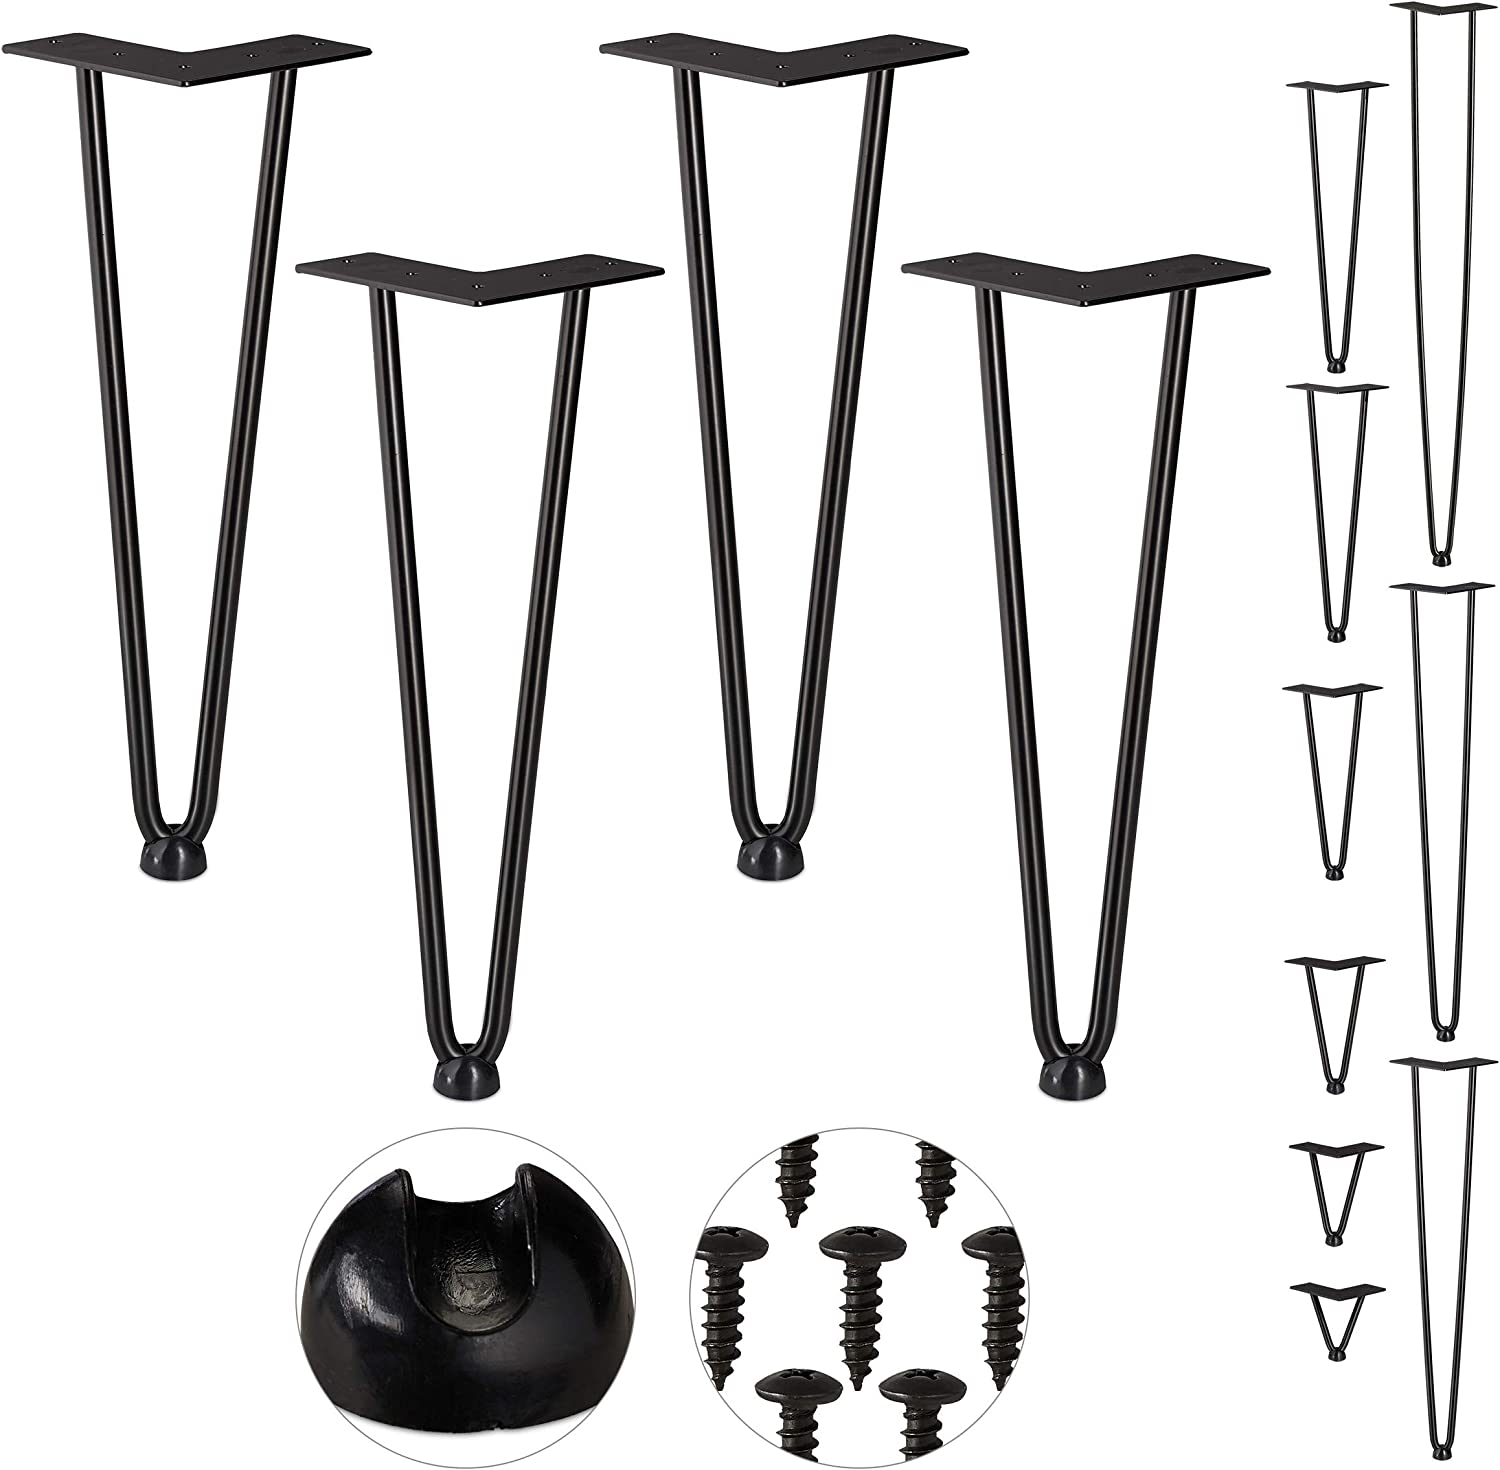 2 Bars steel rubber Table Support for Shelf and Stool Relaxdays Hairpin Legs Metal 36 cm Set of 4 Black